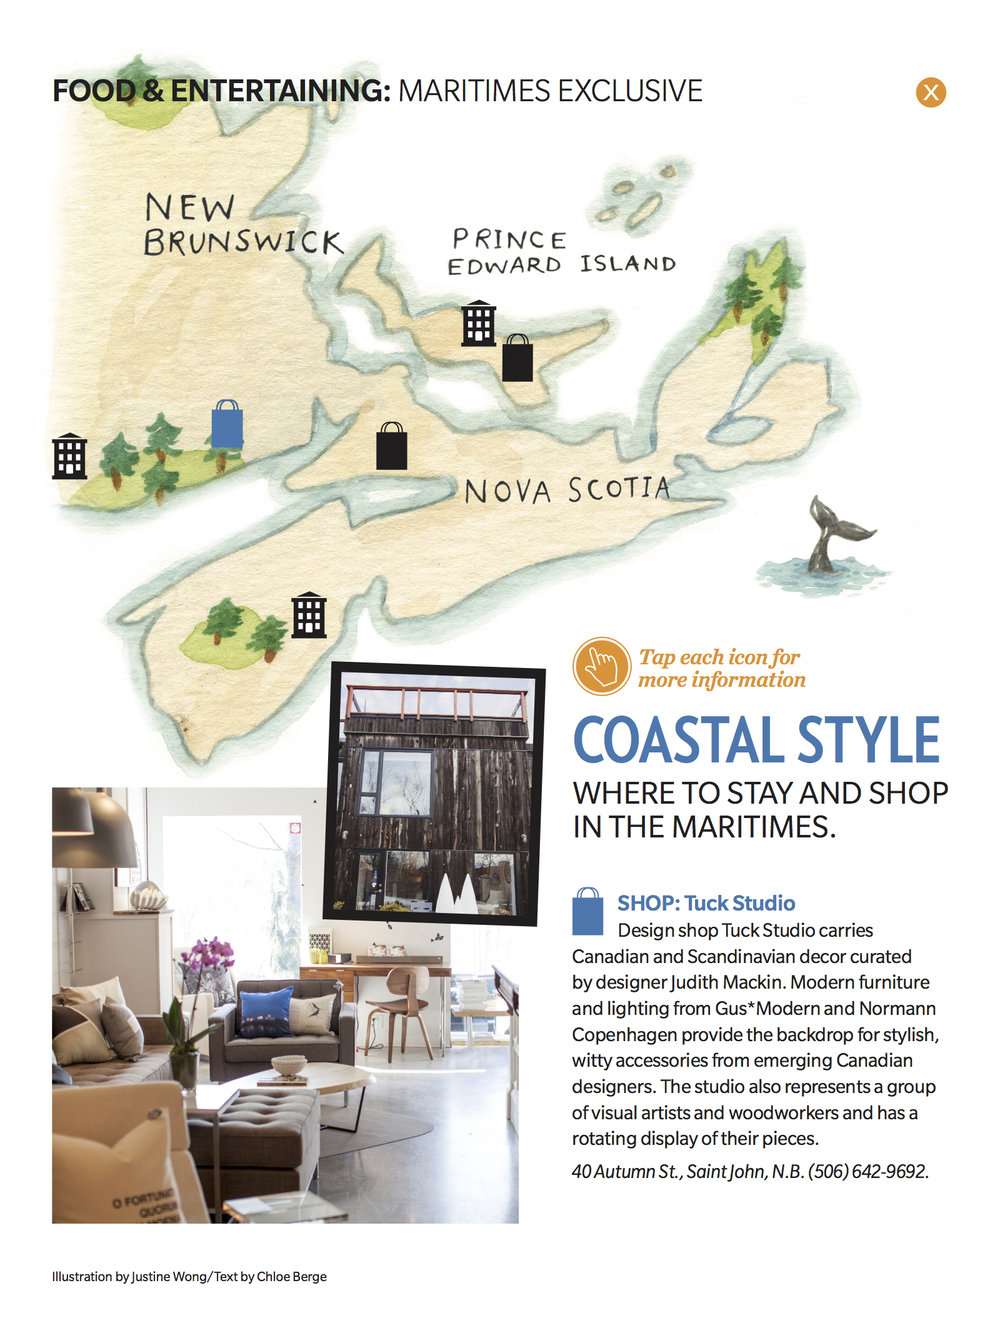 East Coast Travel Guide_House & Home Magazine iPad Edition_July 20142.jpg